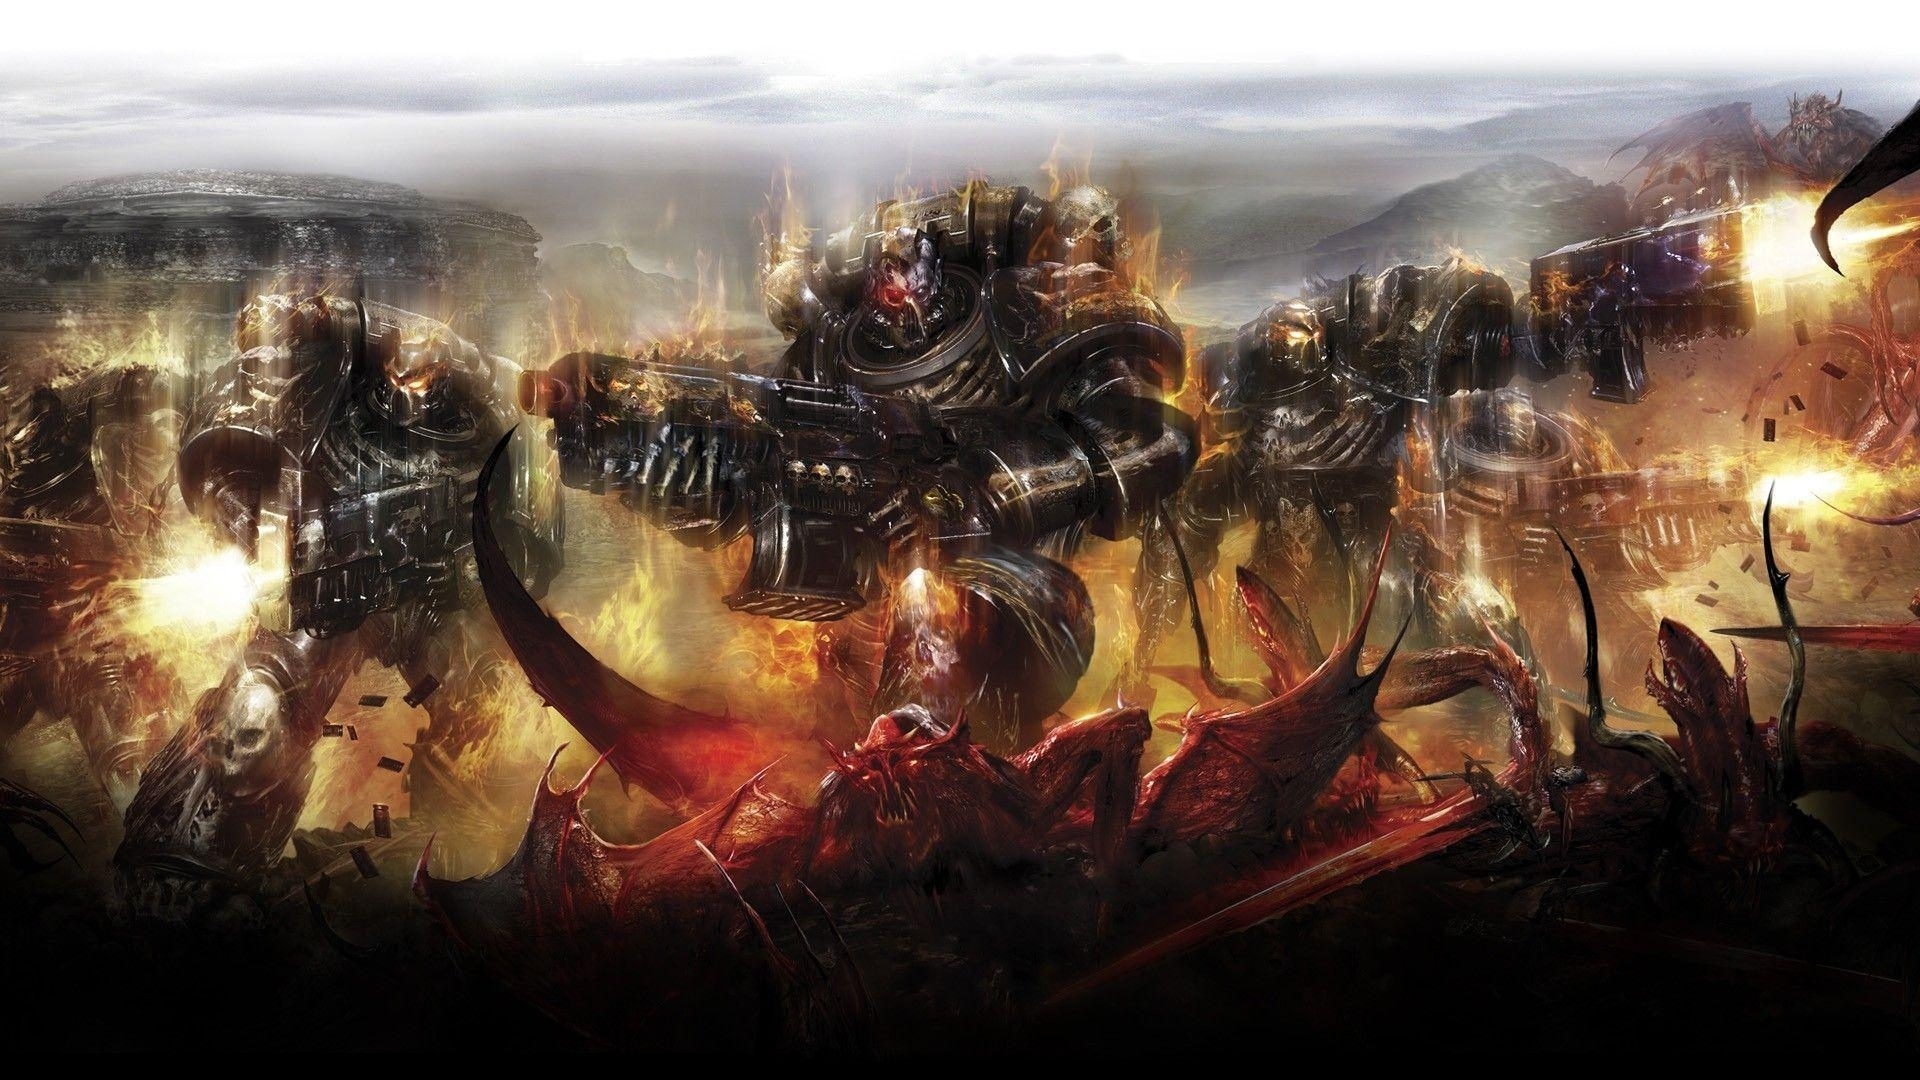 10 Best Warhammer 40K Chaos Space Marines Wallpaper FULL HD 1920×1080 For PC Desktop